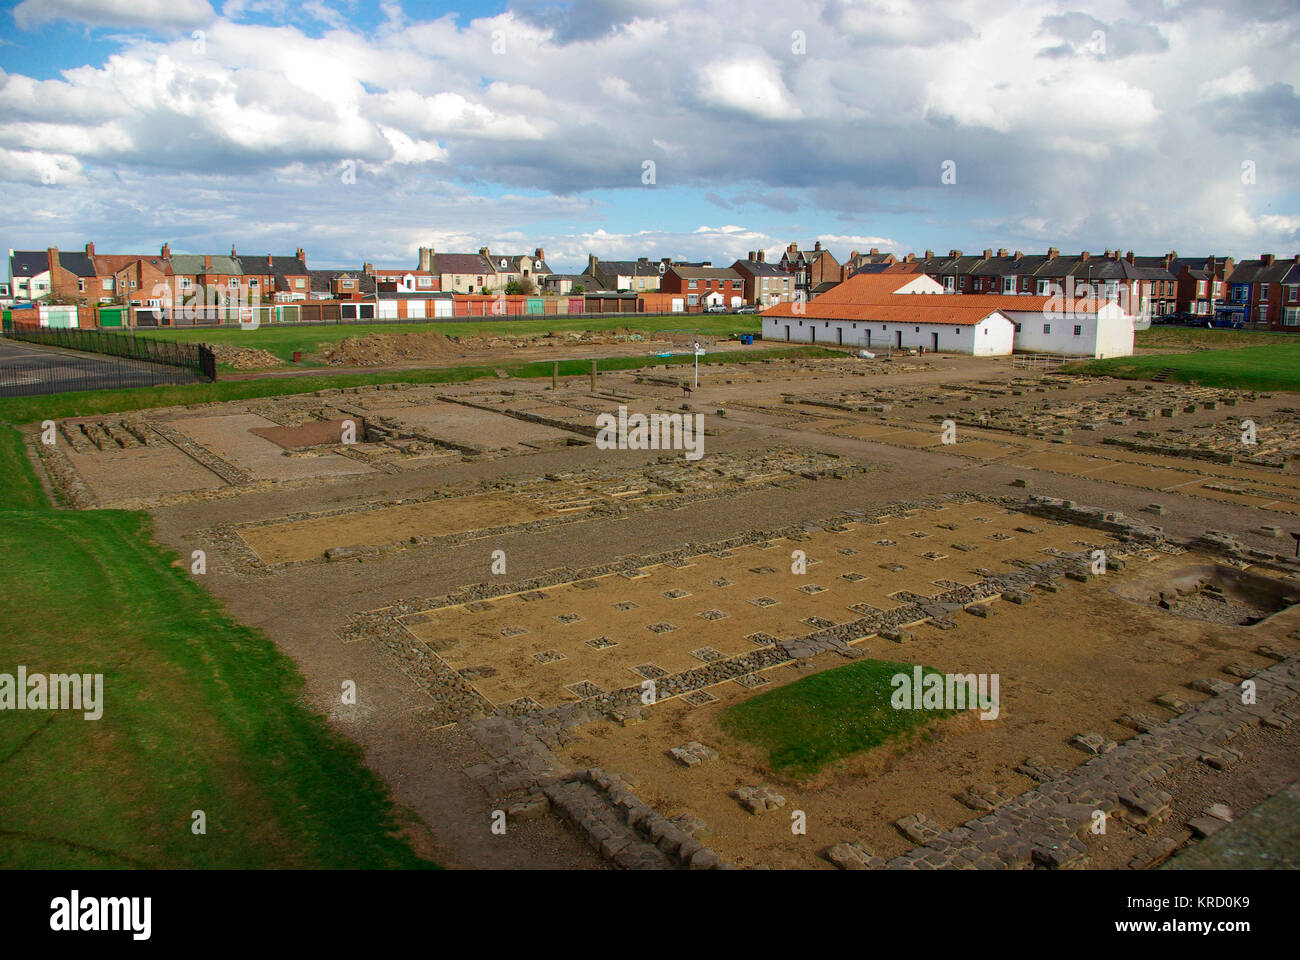 Arbeia Roman Fort - South Shields     Date: 2007 - Stock Image